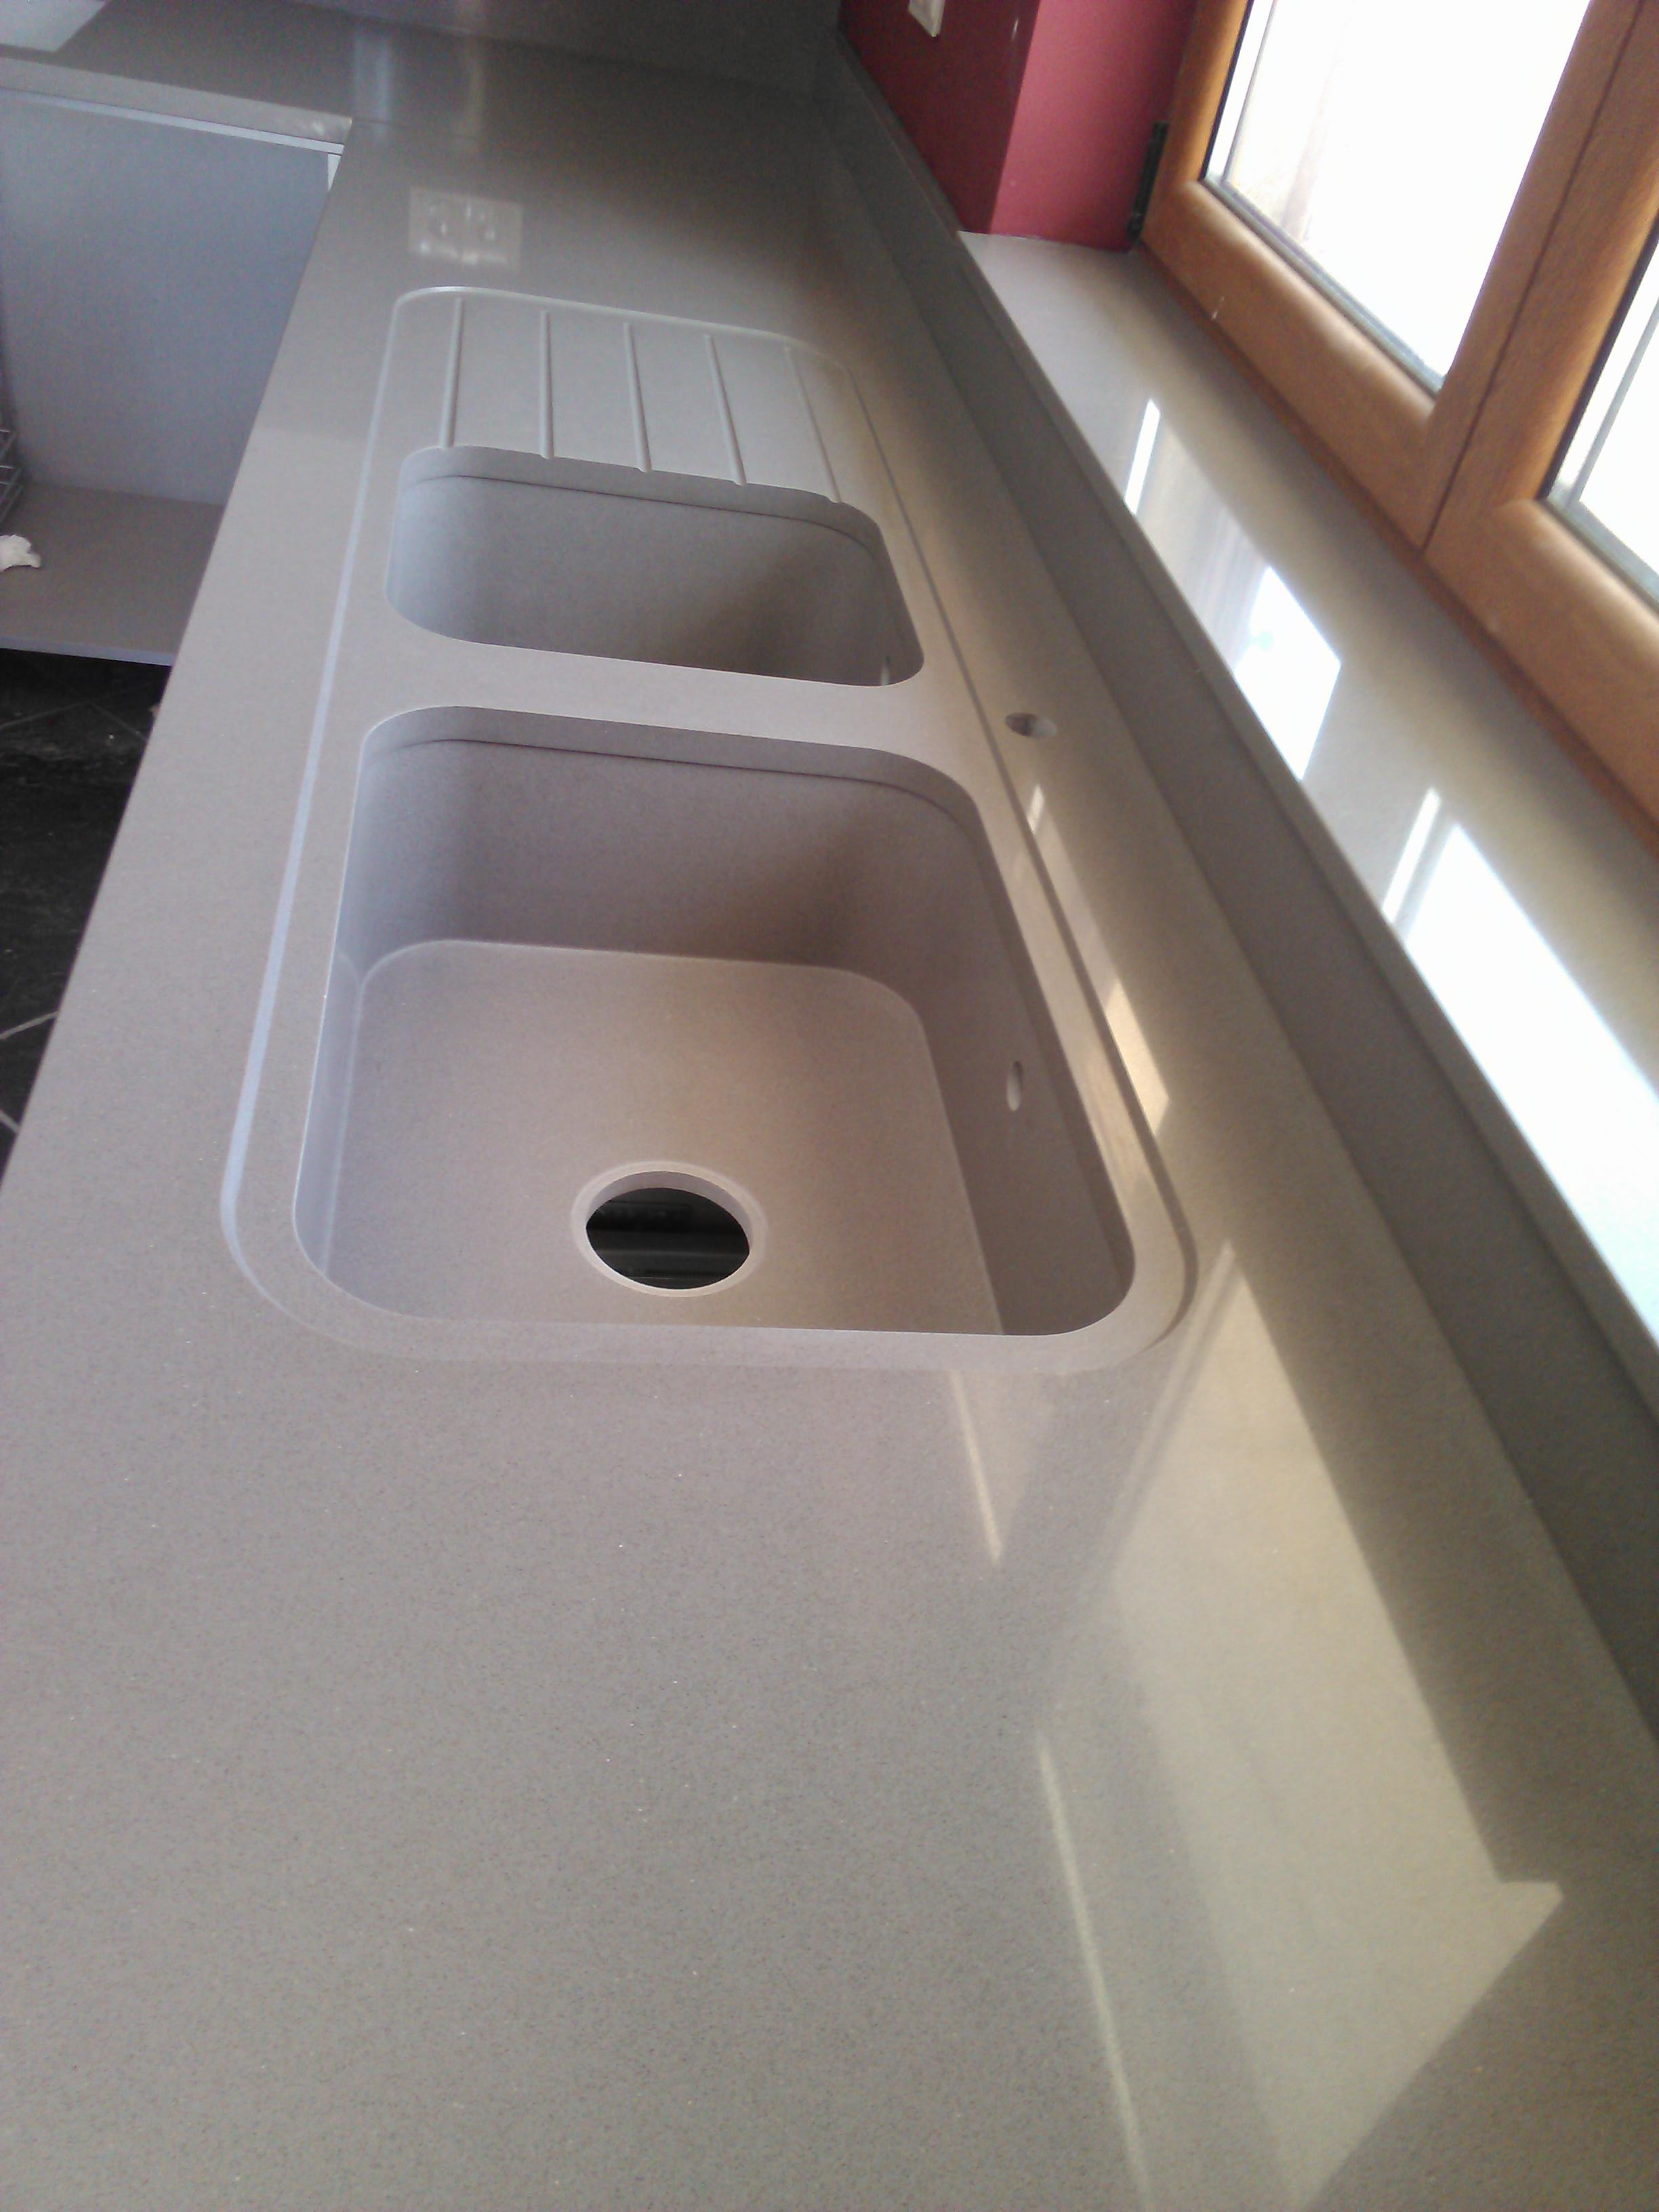 Kitchen countertop Silestone Gris Expo with integrity sink